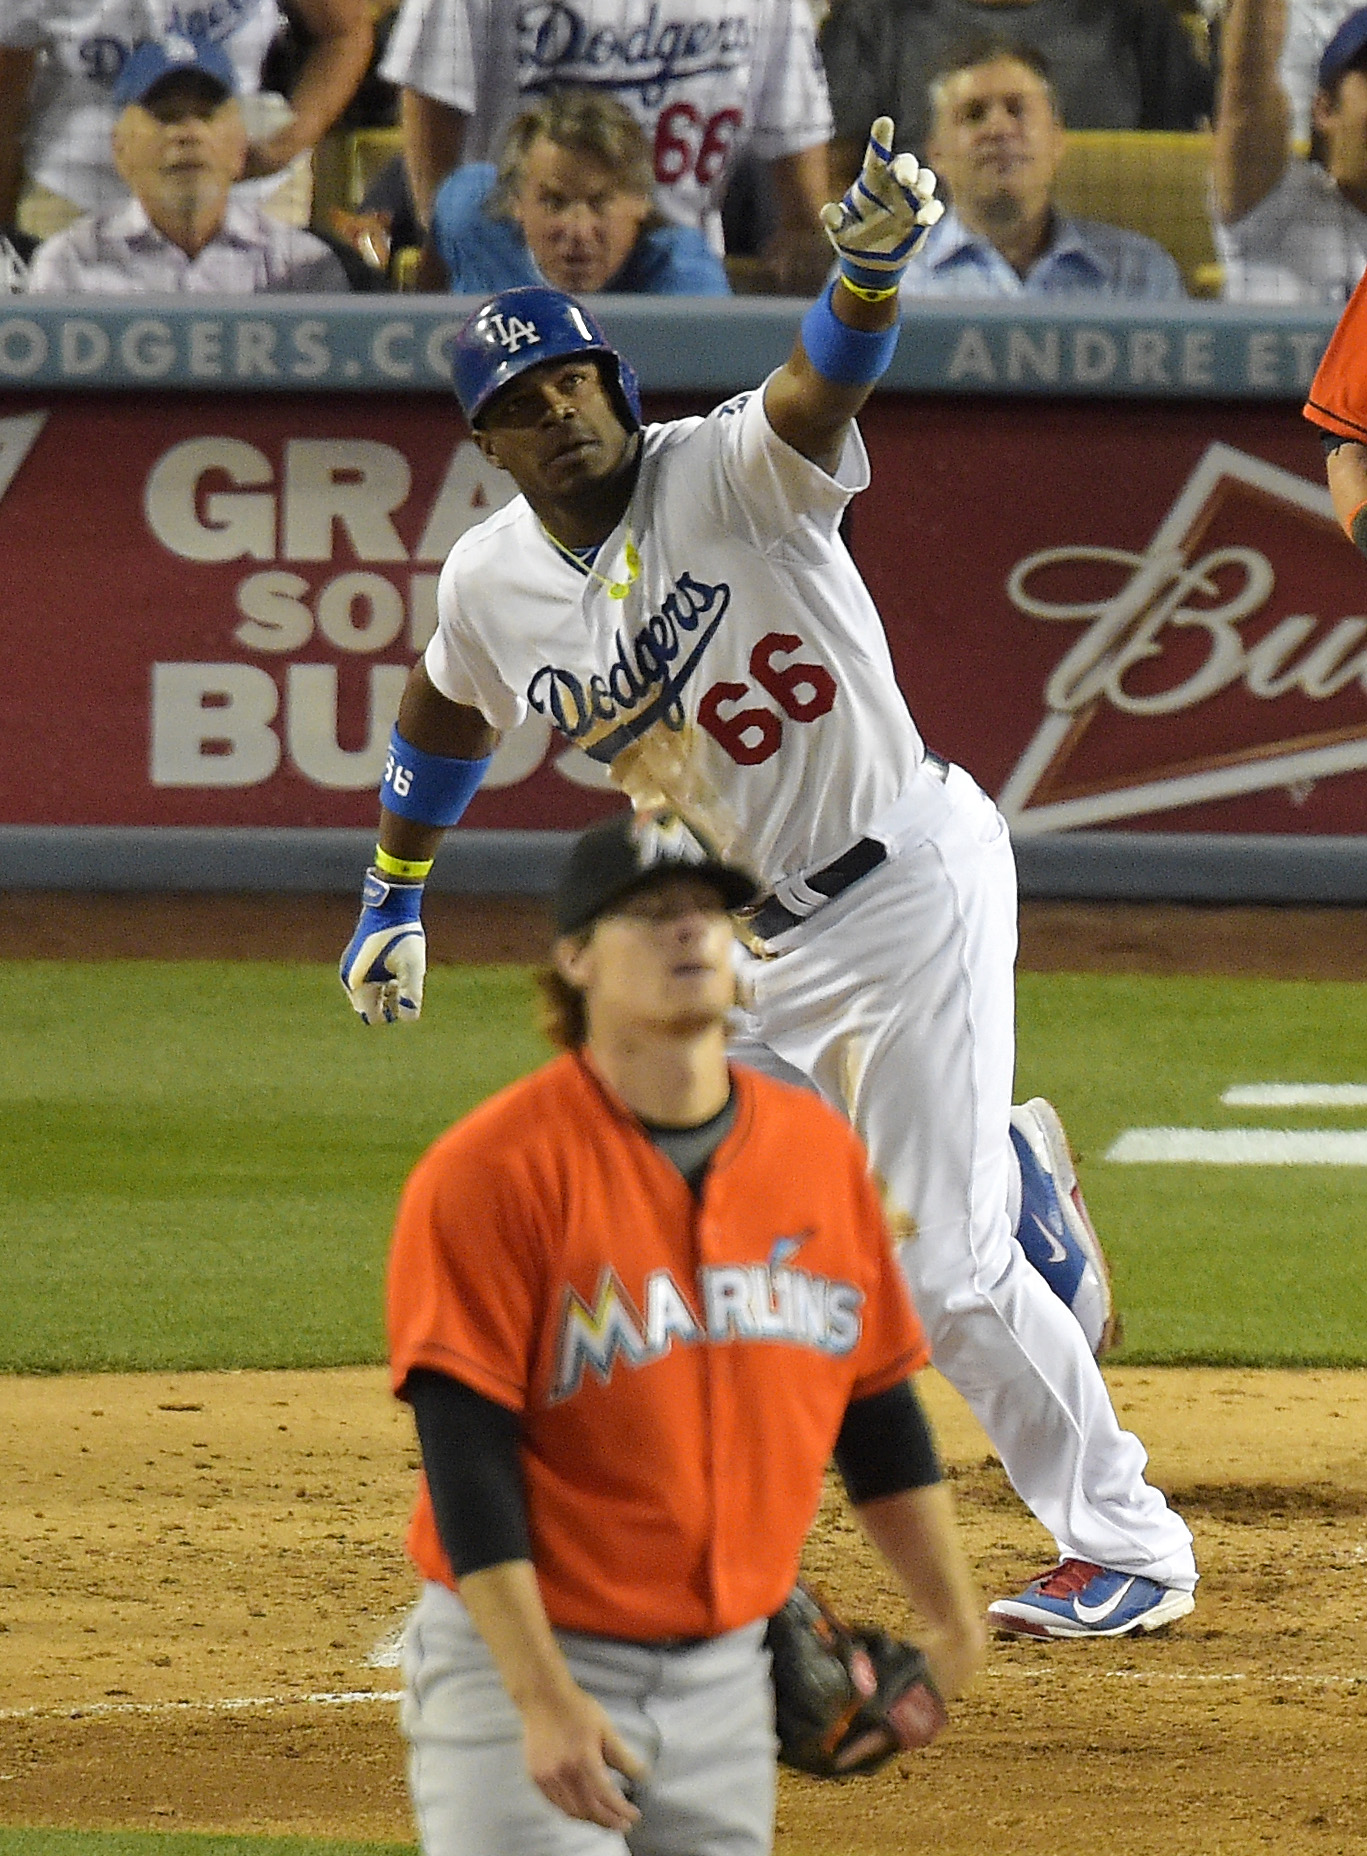 Puig's 3-run HR helps Dodgers beat Marlins